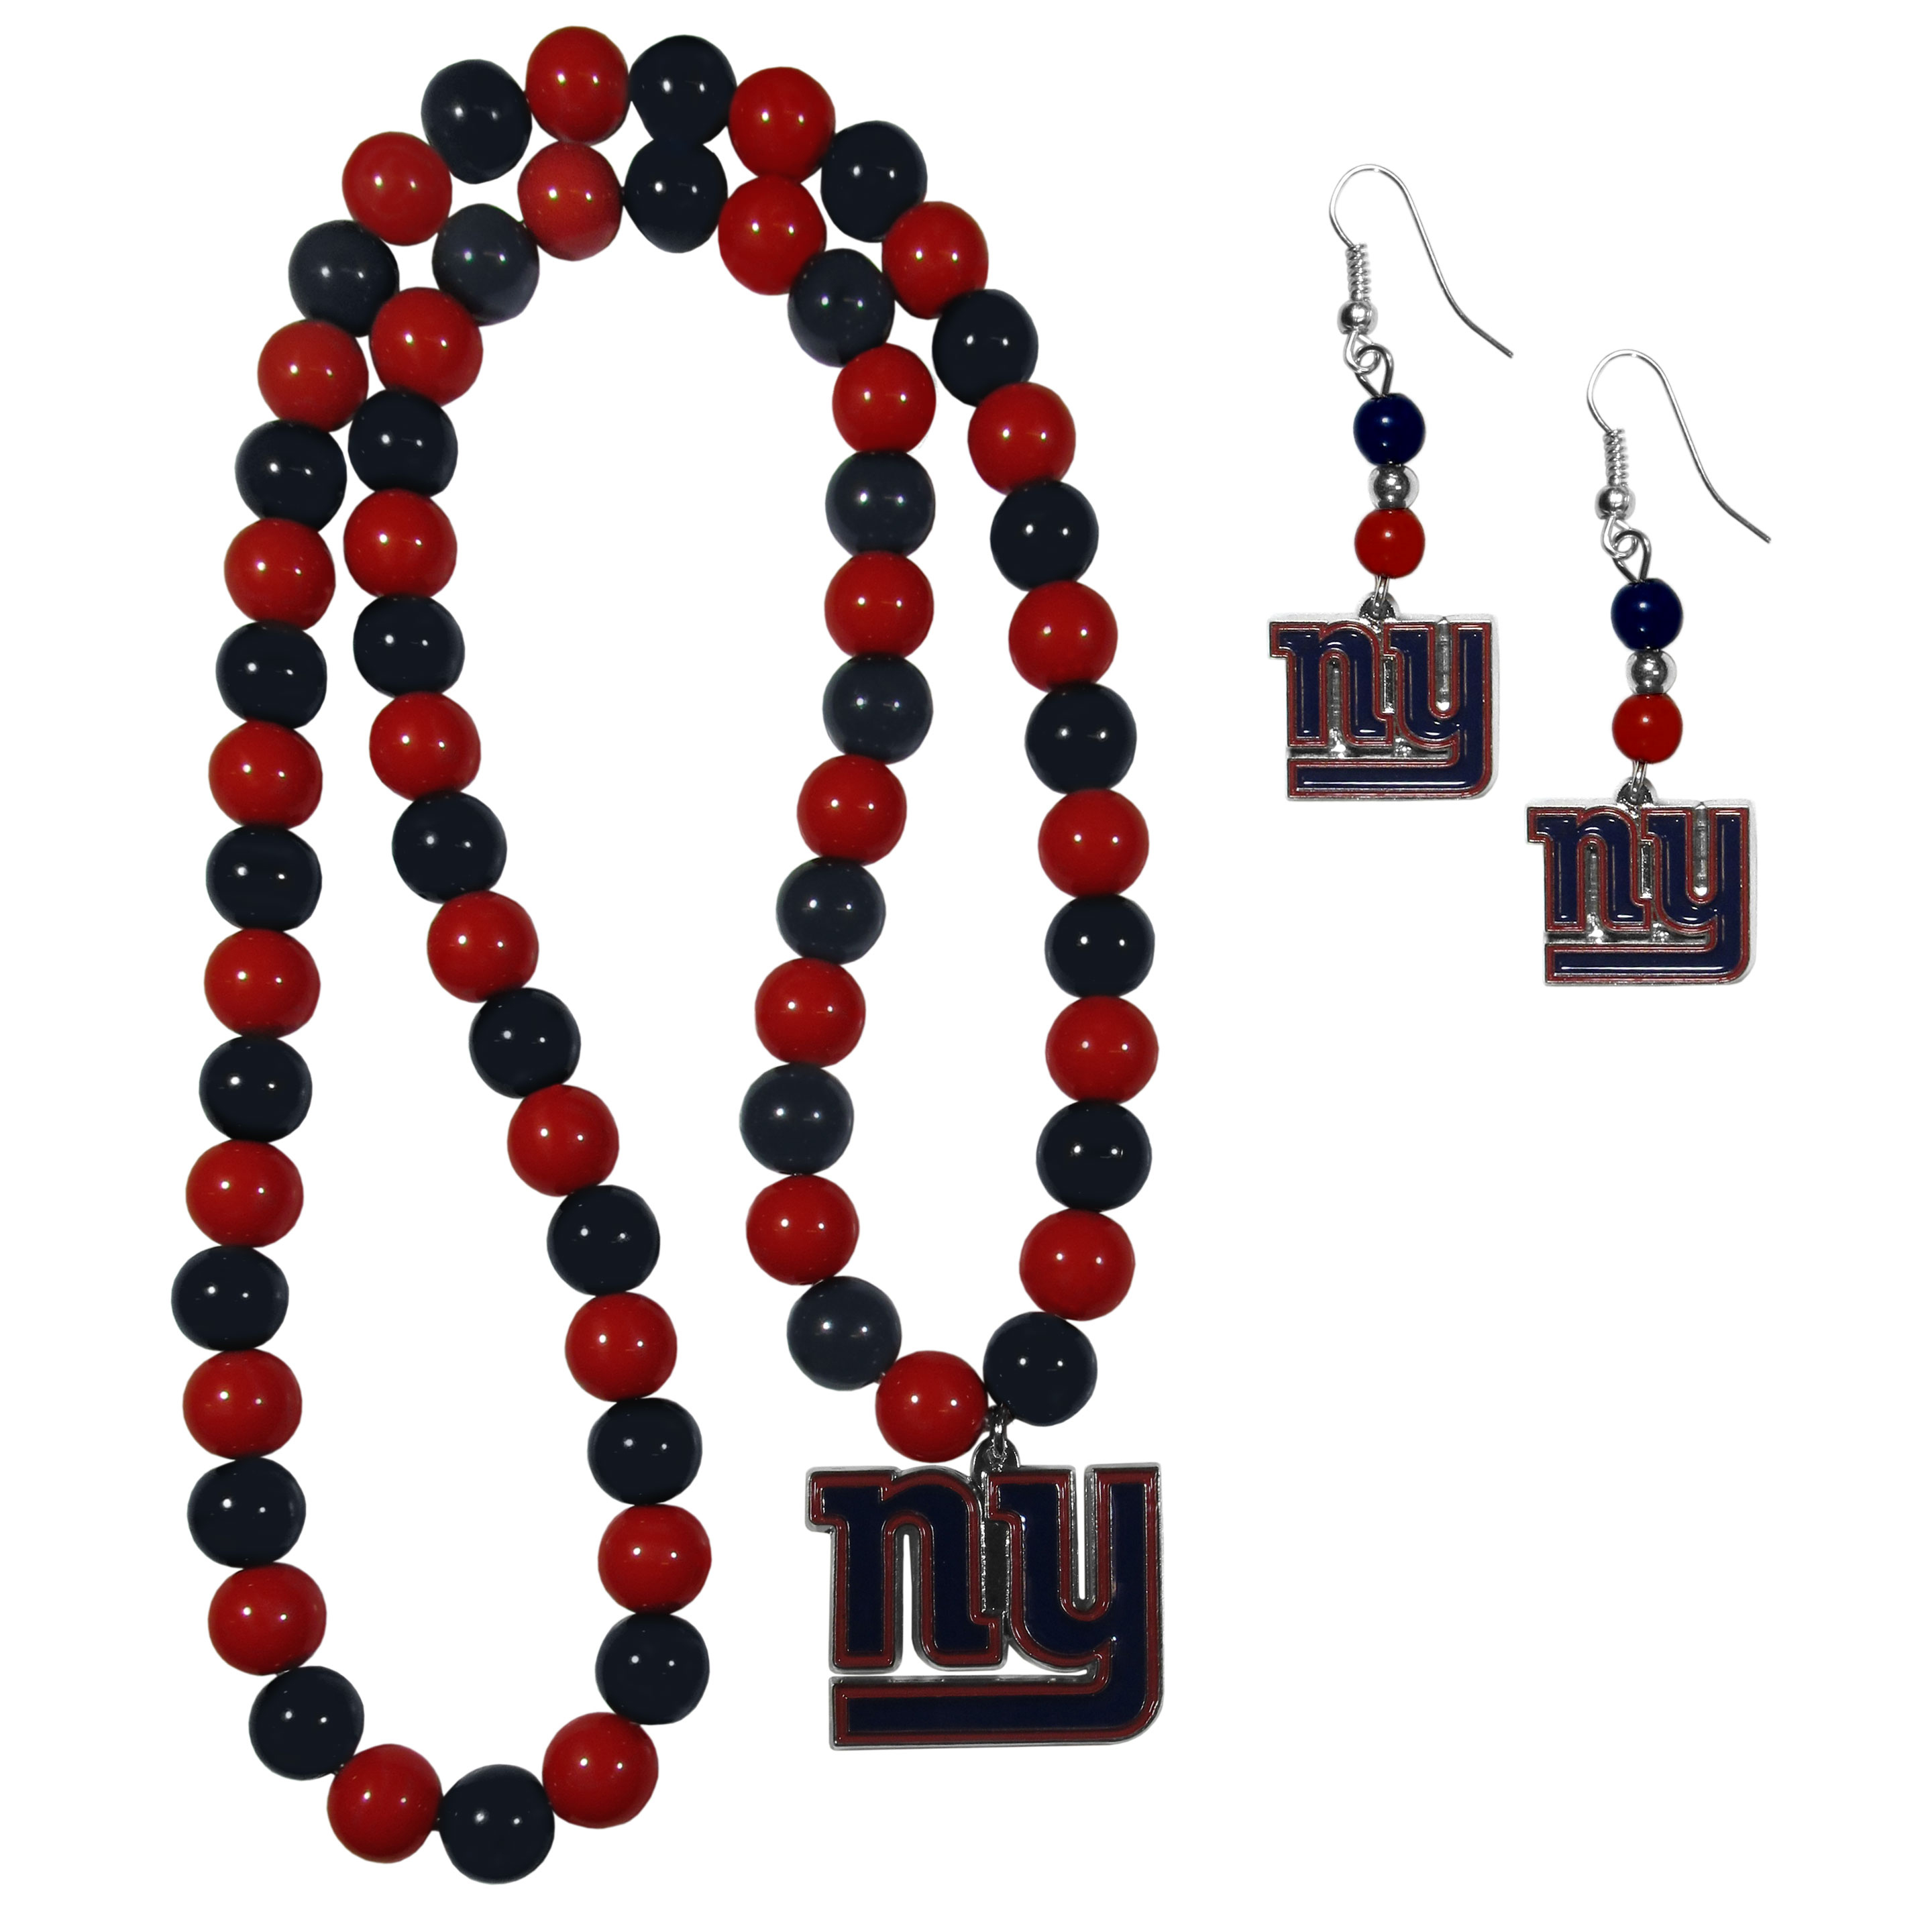 New York Giants Fan Bead Earrings and Necklace Set - These fun and colorful New York Giants fan bead jewelry pieces are an eyecatching way to show off your team spirit. The earrings feature hypoallergenic, nickel free fishhook post and 2 team colored beads with a beautifully carved team charm to finish this attractive dangle look. The mathcing bracelet has alternating team colored beads on a stretch cord and features a matching team charm.